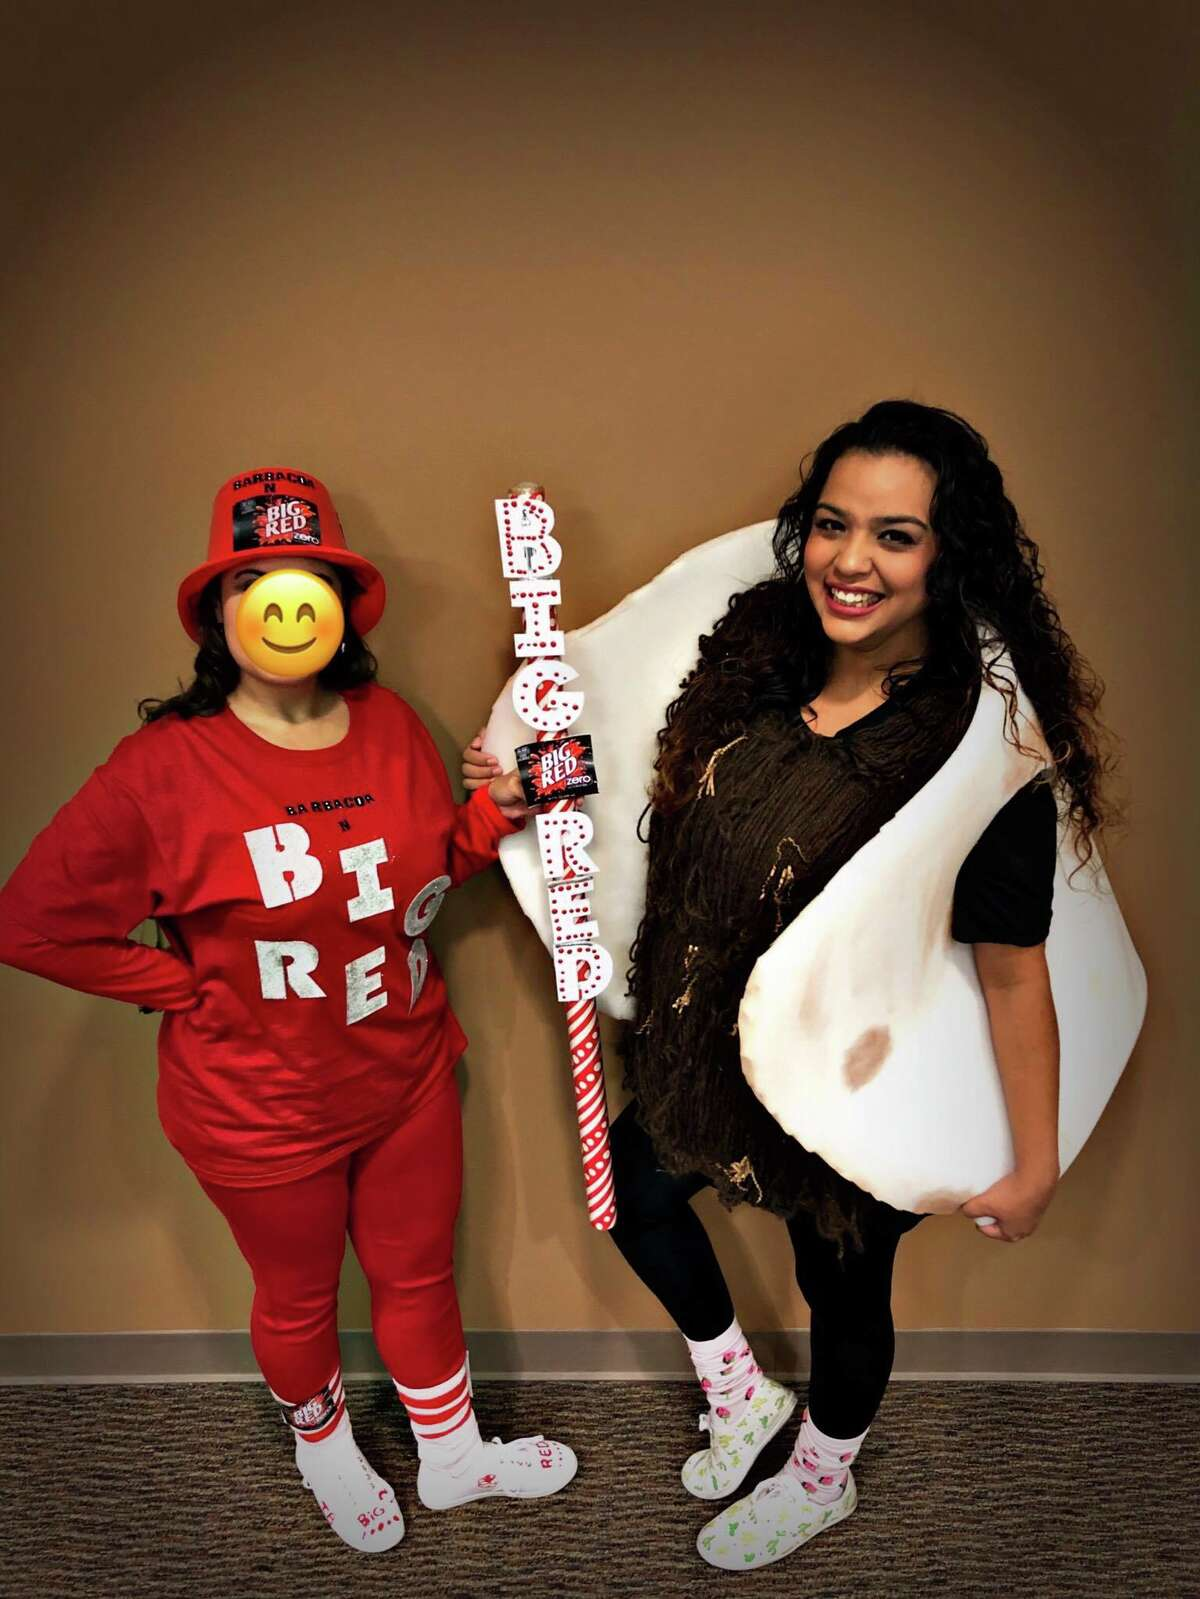 Erika De Anda and her coworker at The San Antonio Orthopedic Group dressed as Big Red & Barbacoa.